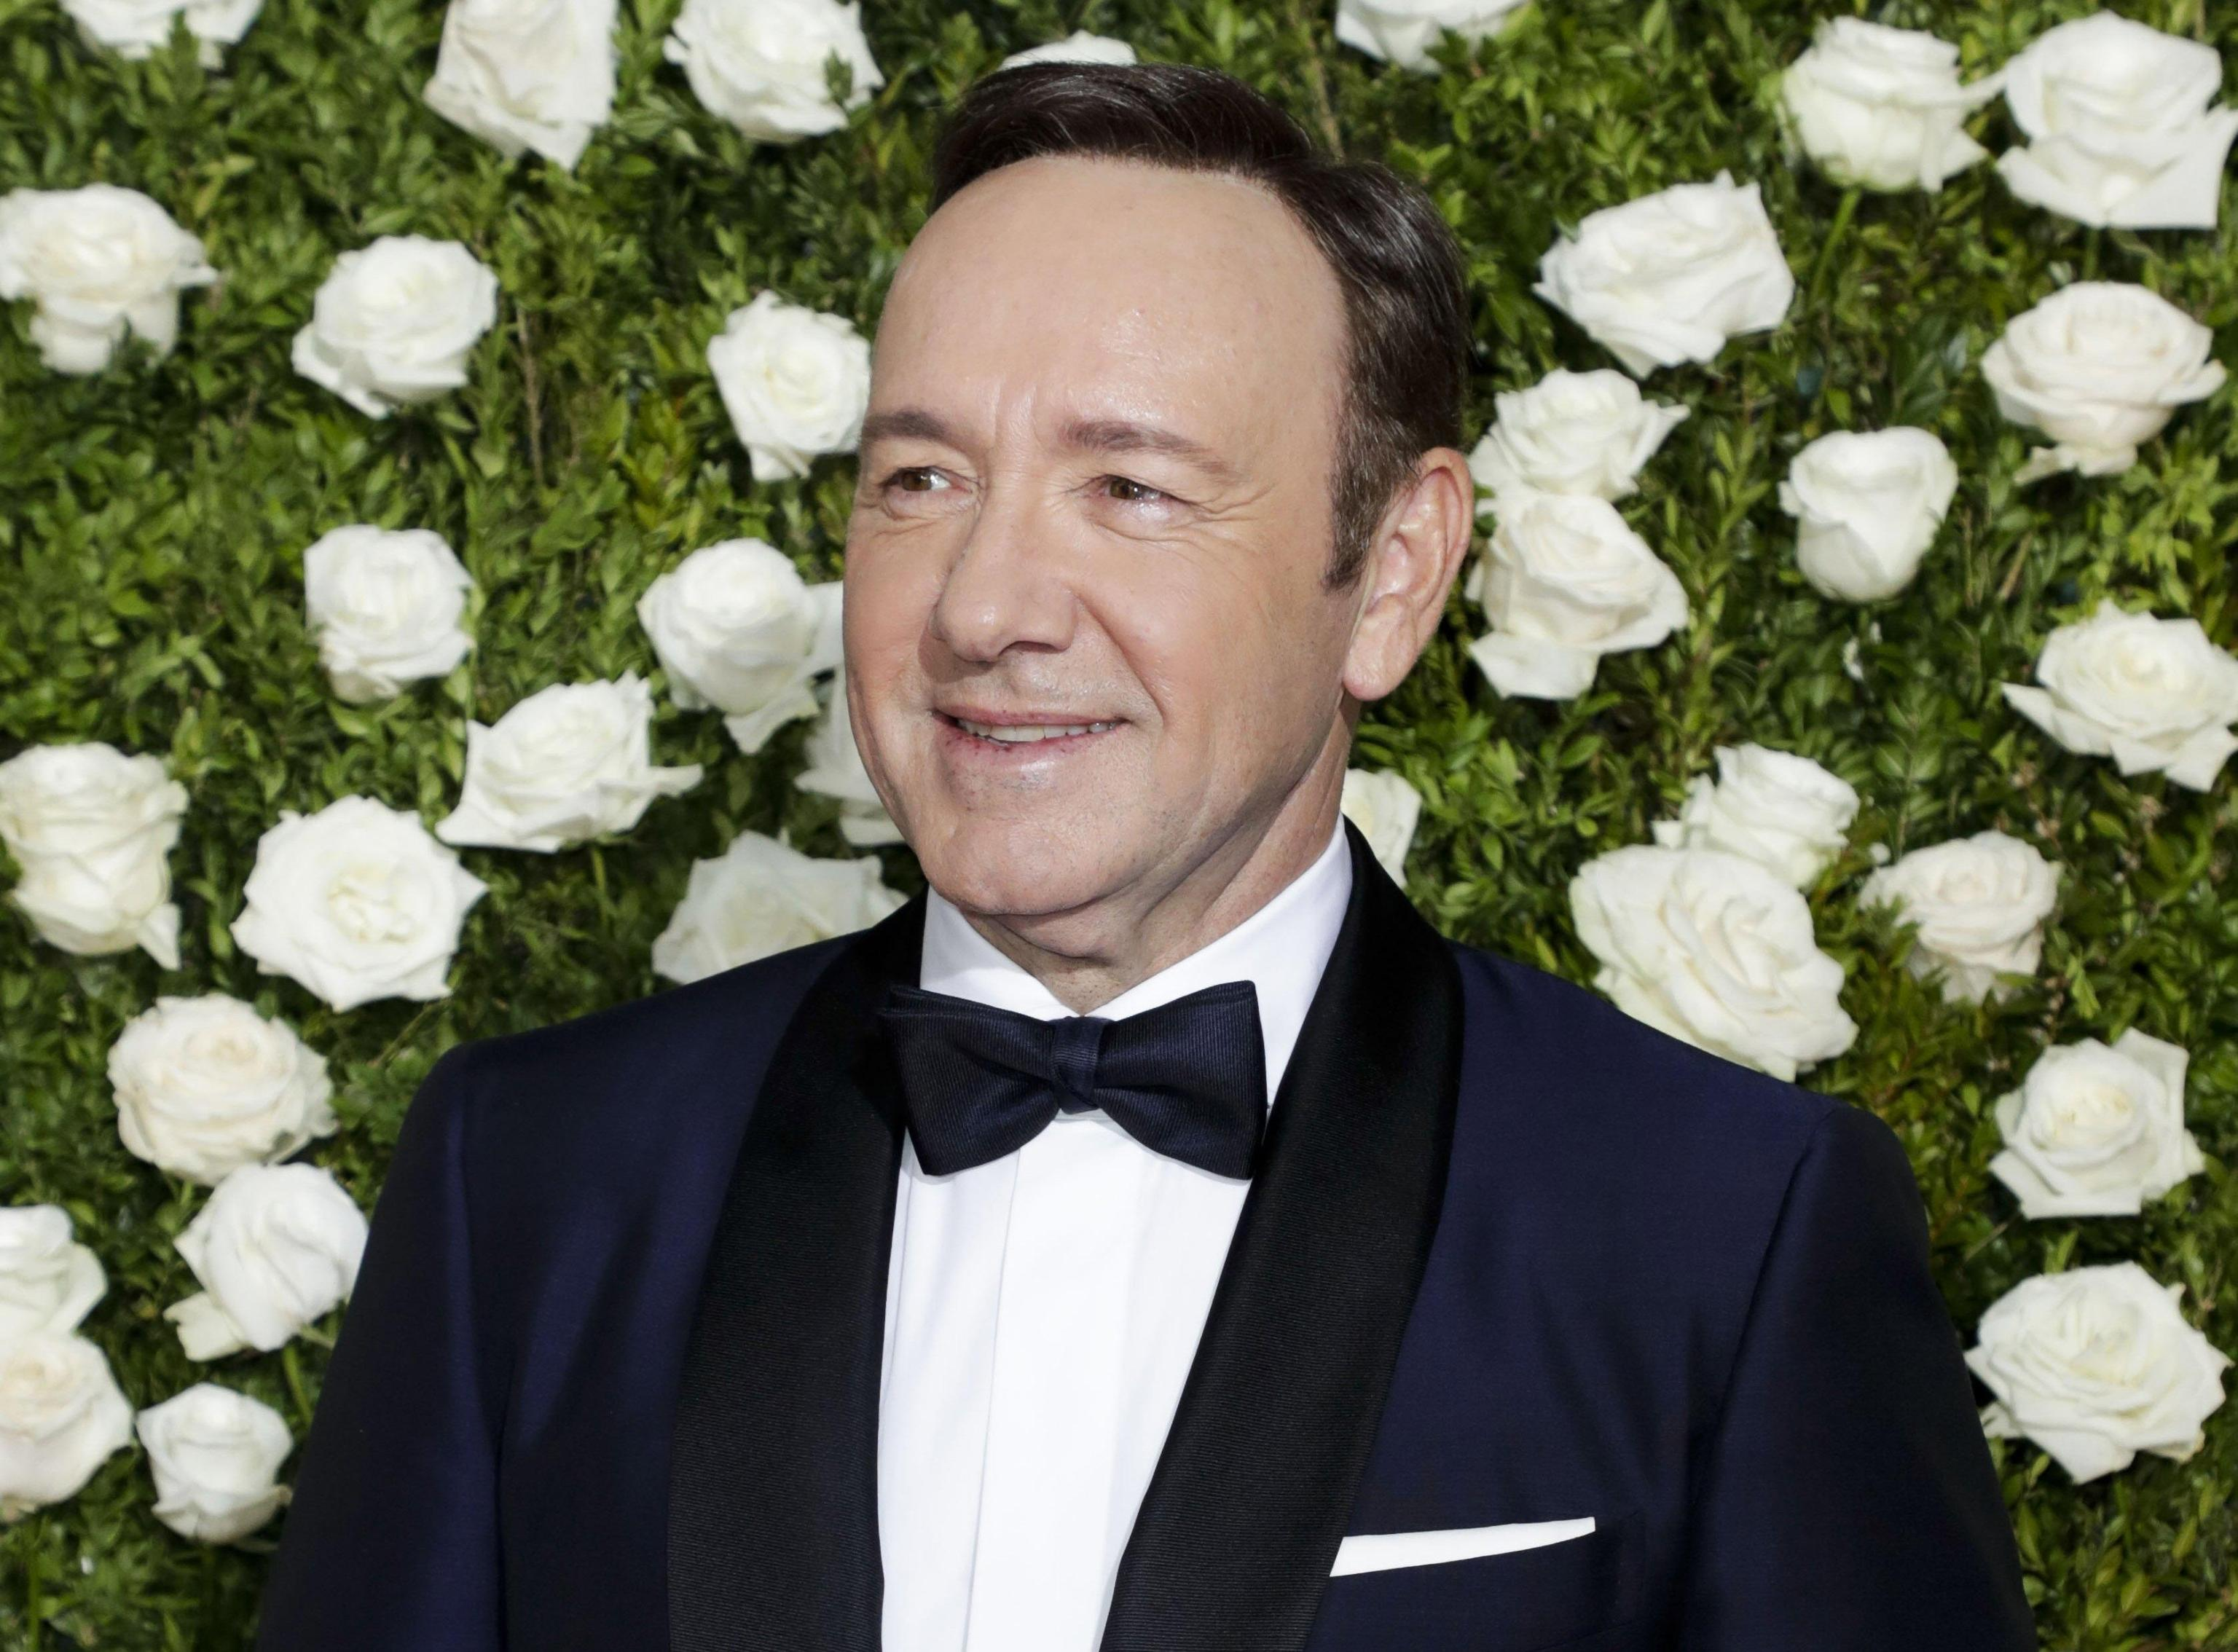 Kevin Spacey apologizes to actor for alleged 'sexual advance'